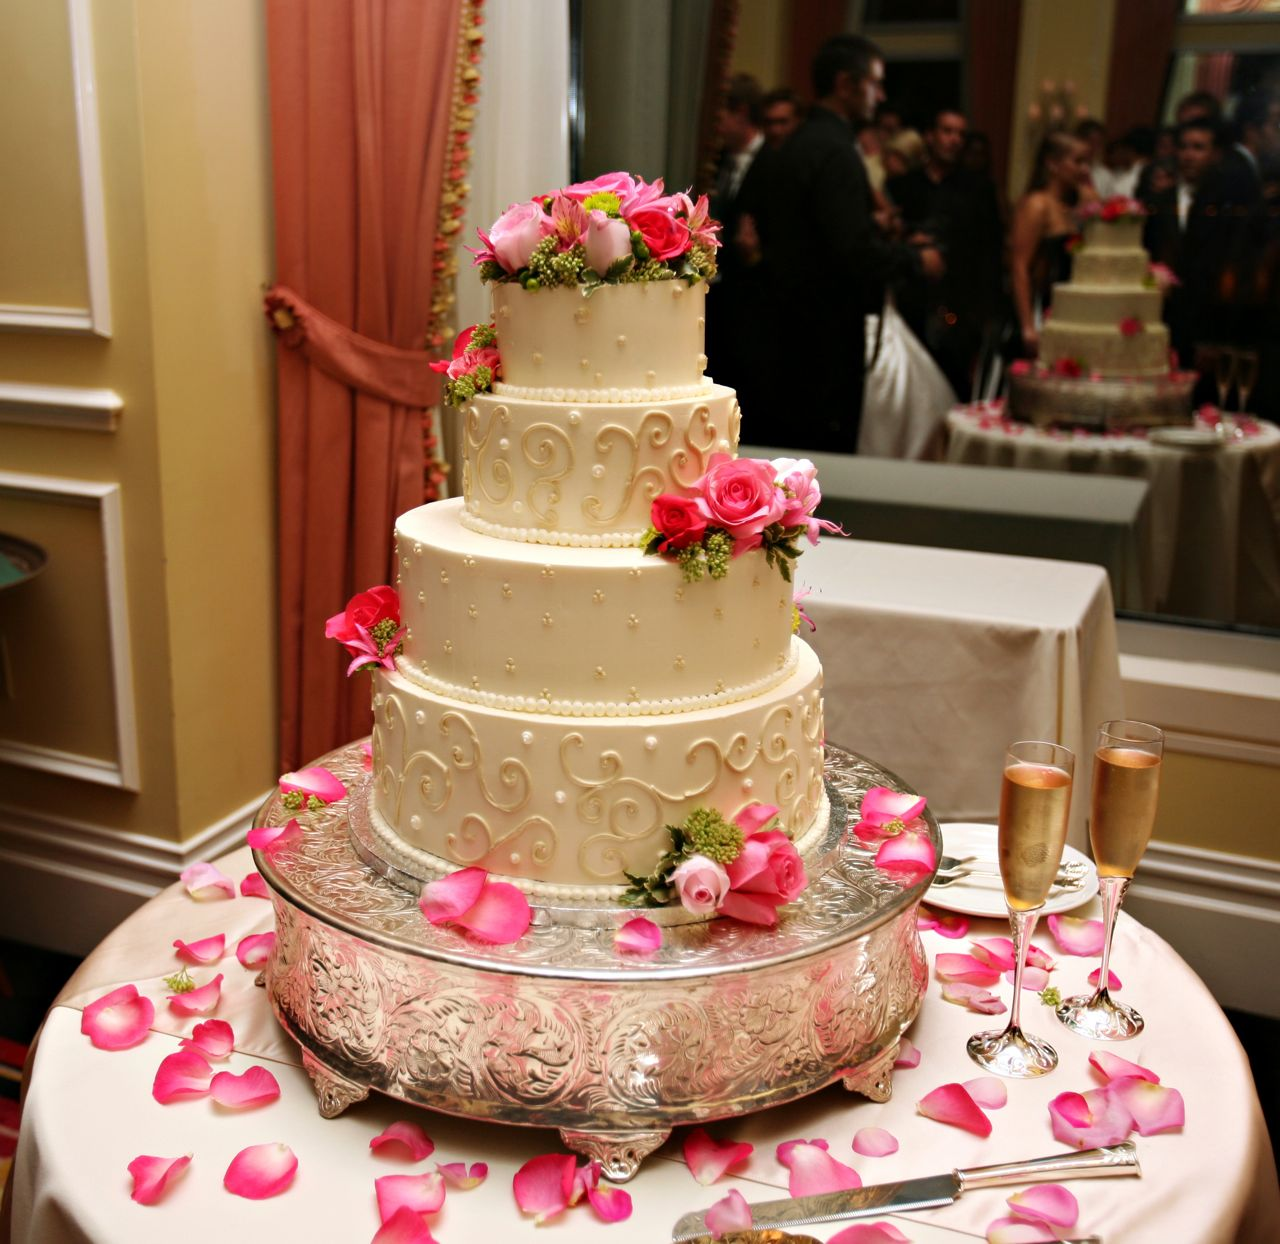 top of wedding cake ideas 15 bolos de casamento lindos para te inspirar amando 21052